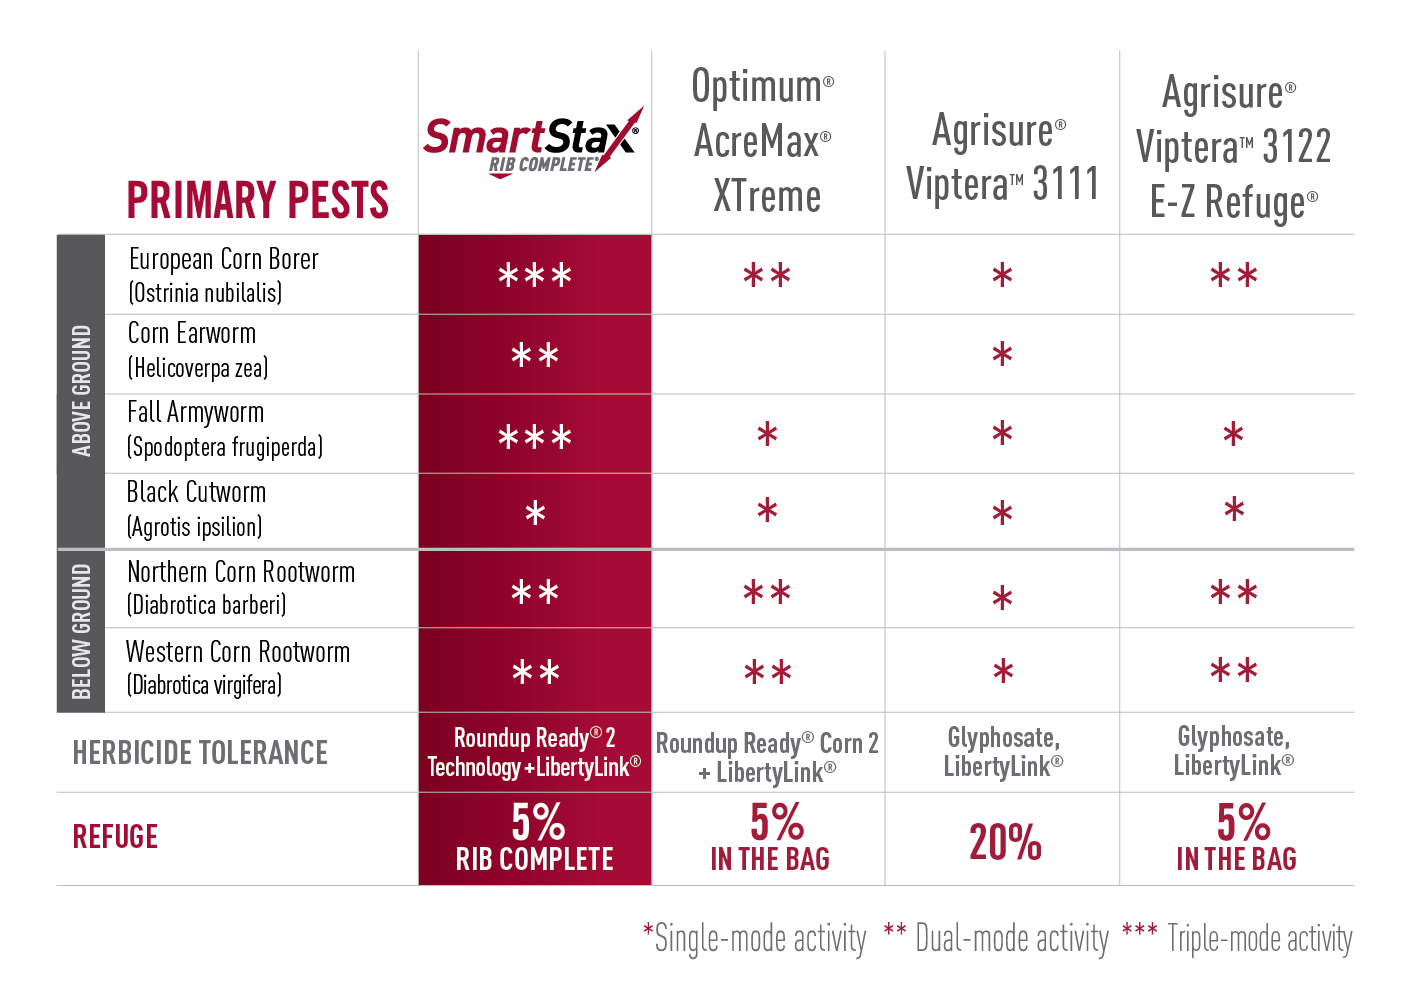 SmartStax comparison chart